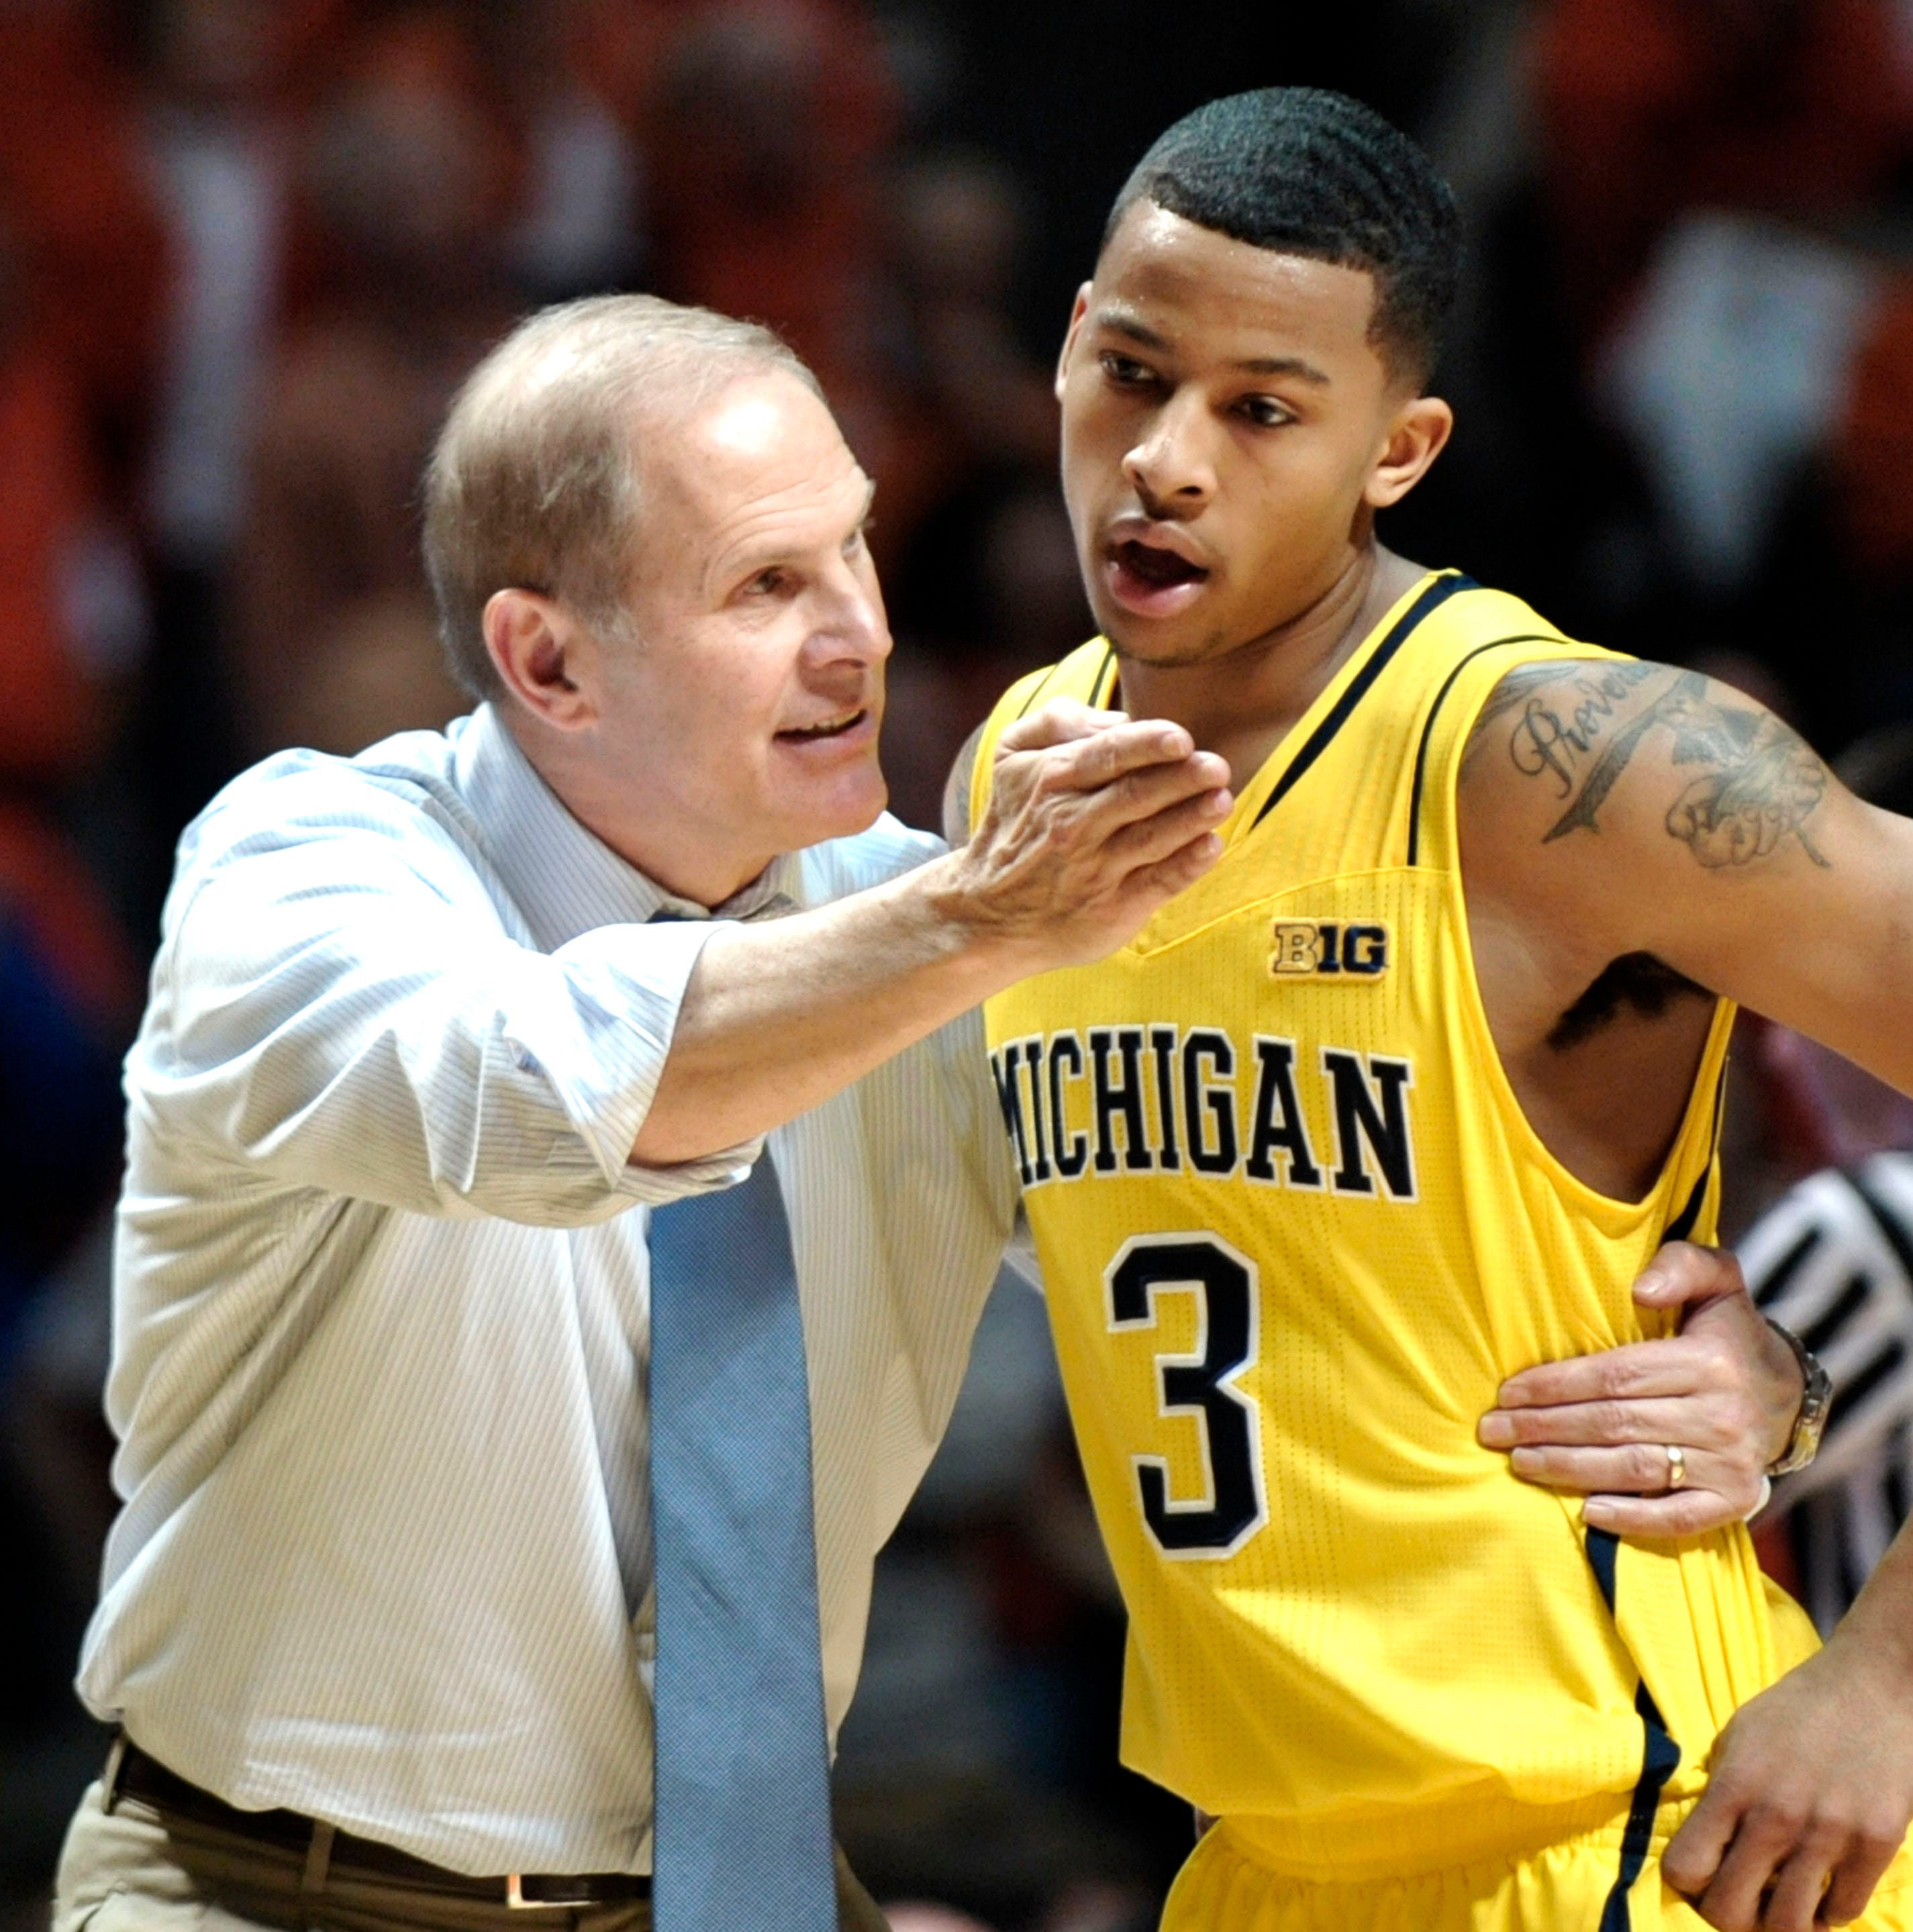 John Beilein saved Michigan basketball, made it matter again